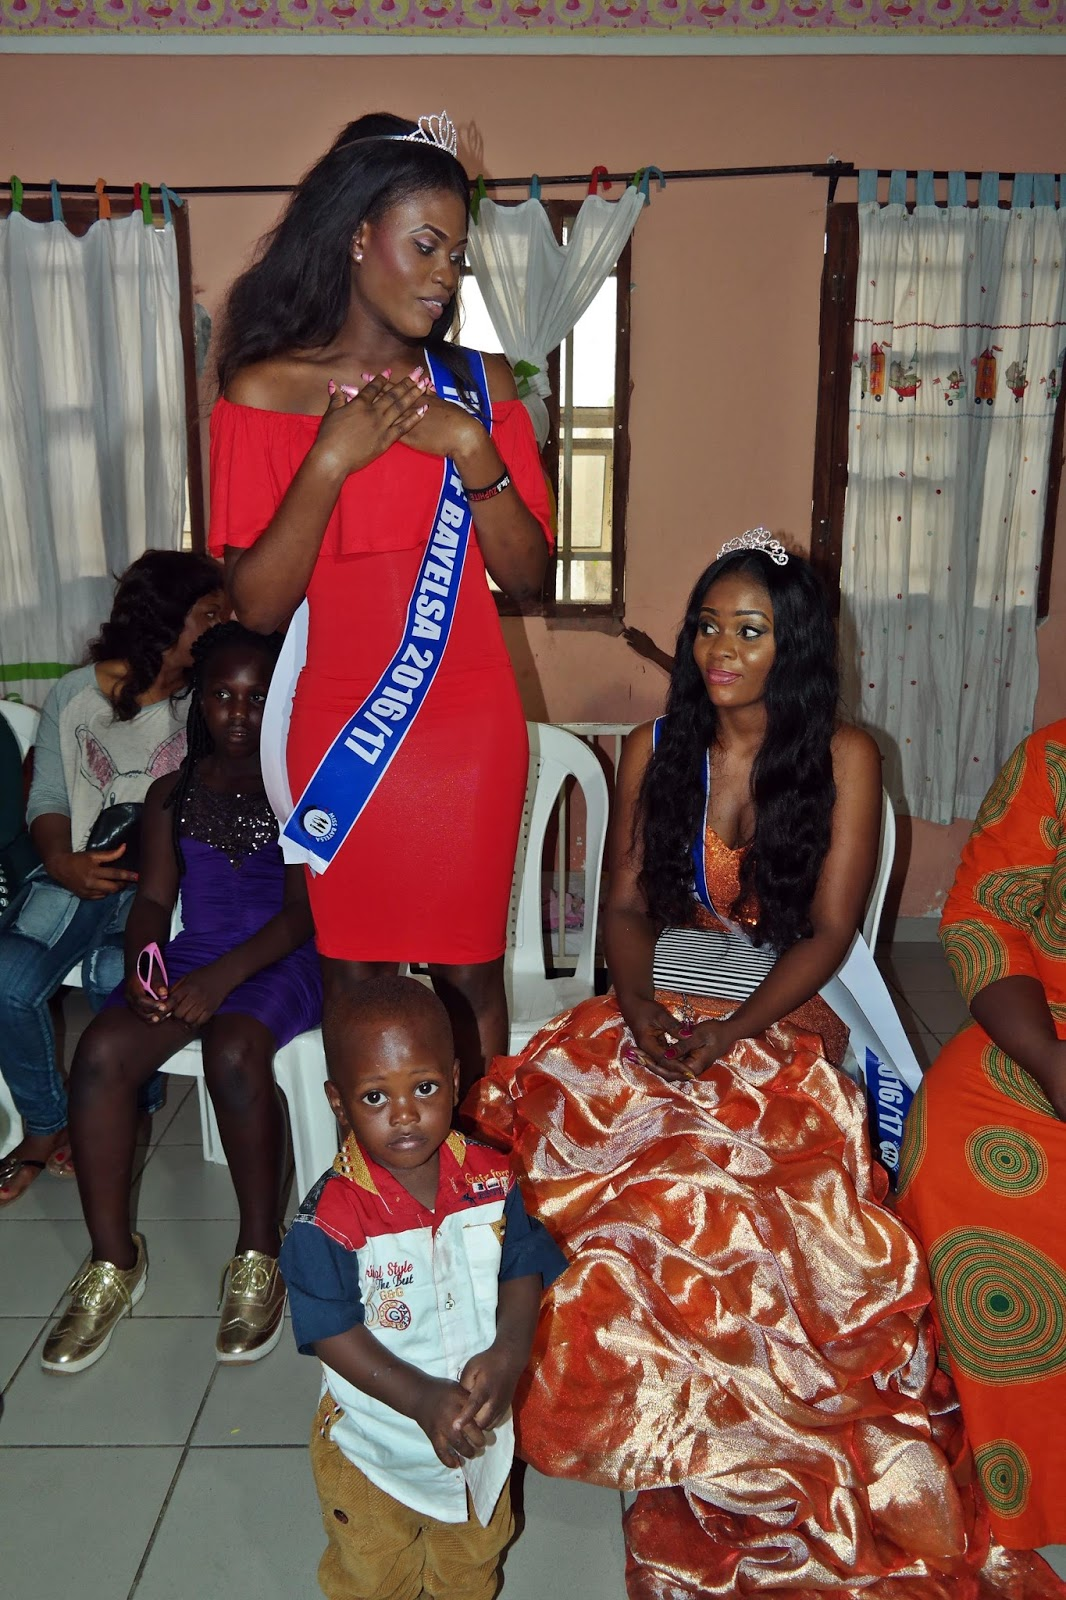 Love in the Air: Queen Freda Accompanies Queen Bella to the Orphanage 4